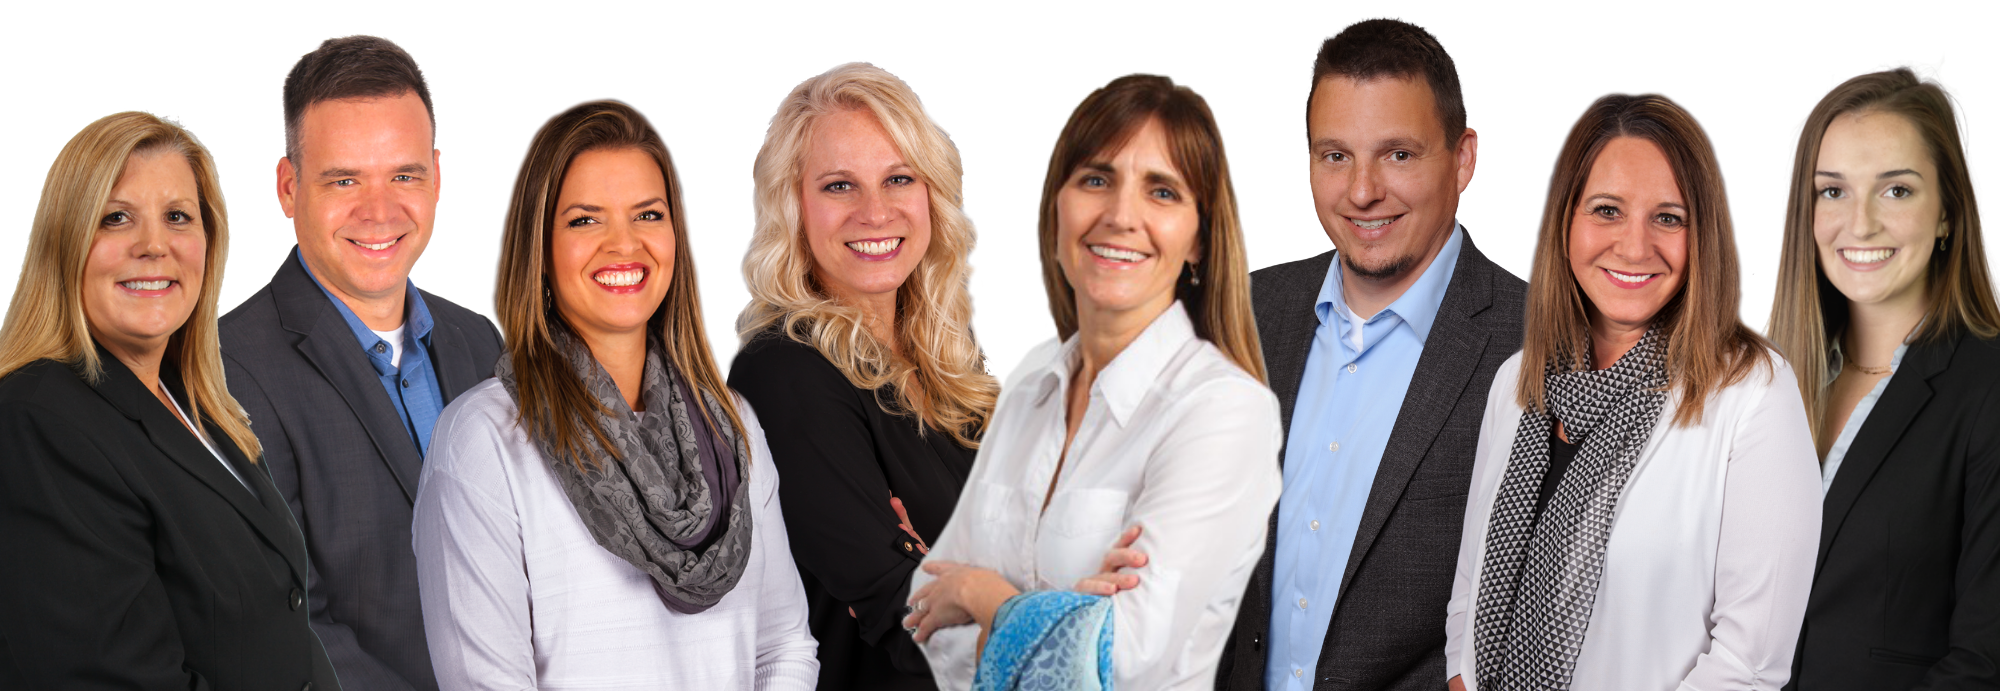 The MAKING DREAMS Realty Team